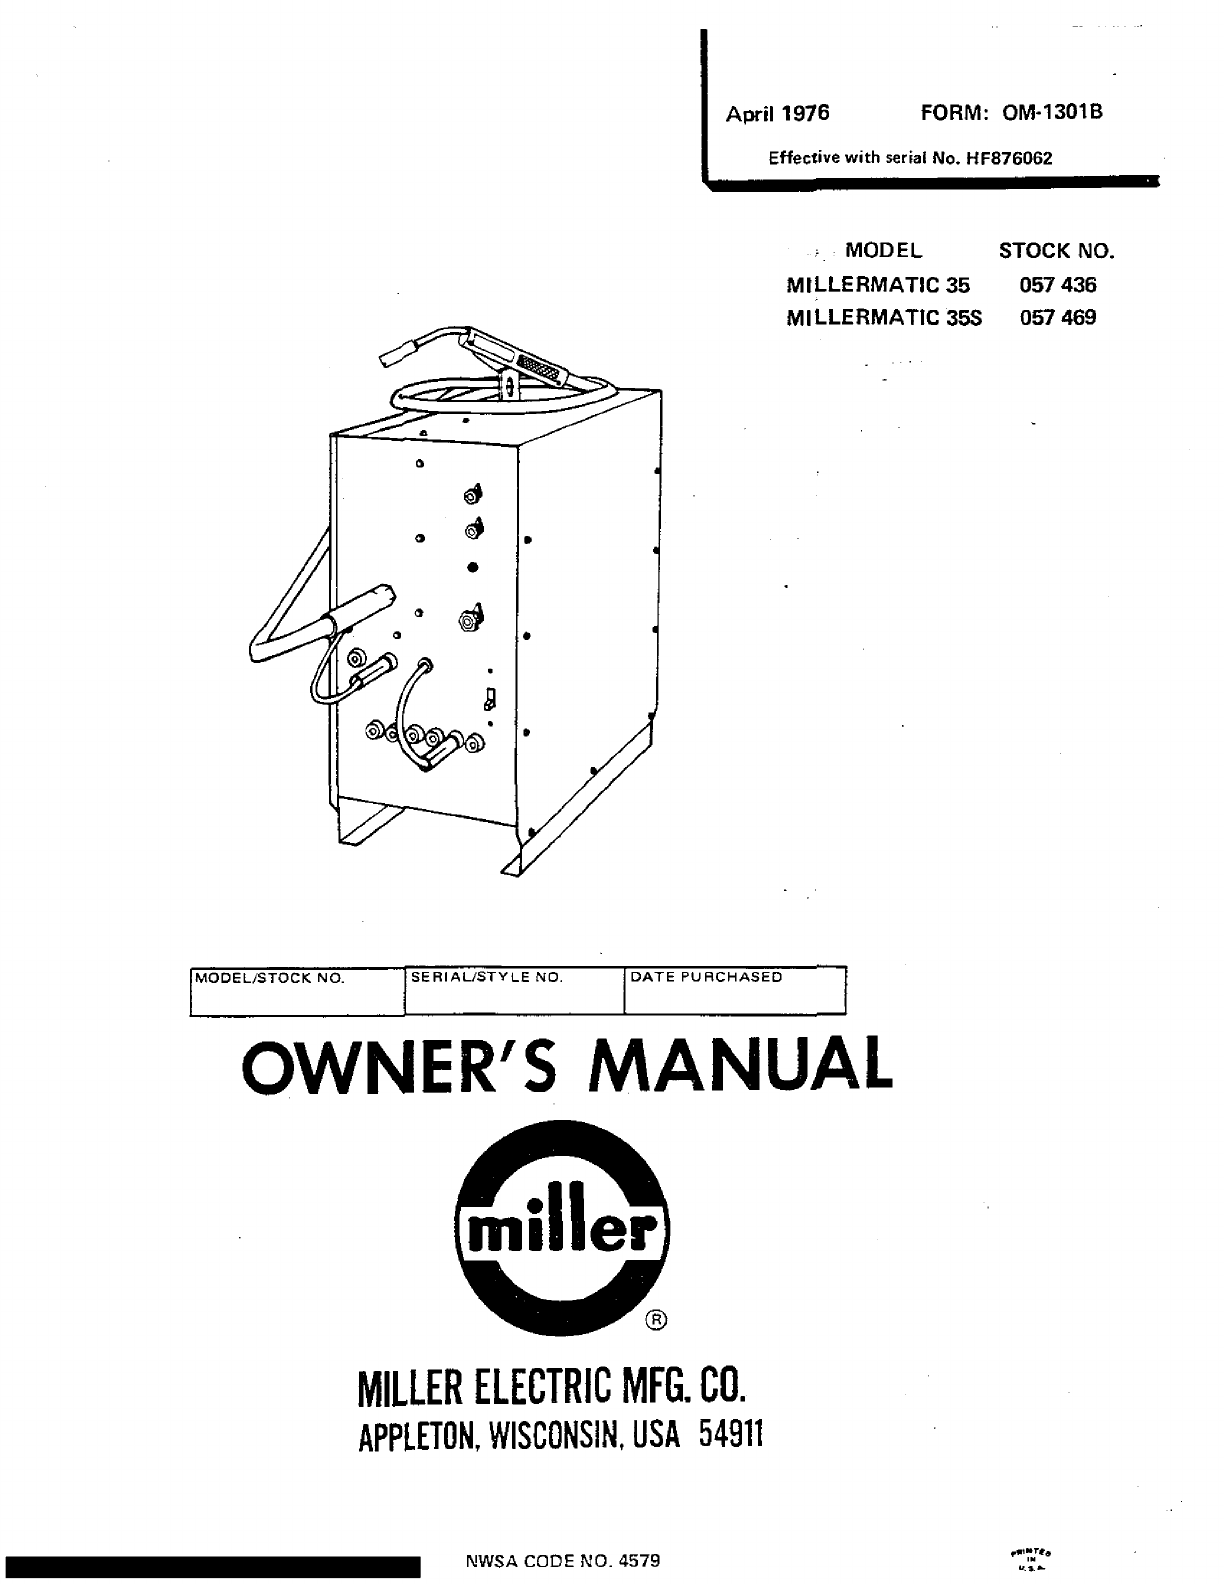 Miller Electric Millermatic 35 Owners Manual ManualsLib Makes It Easy To  Find Manuals Online!